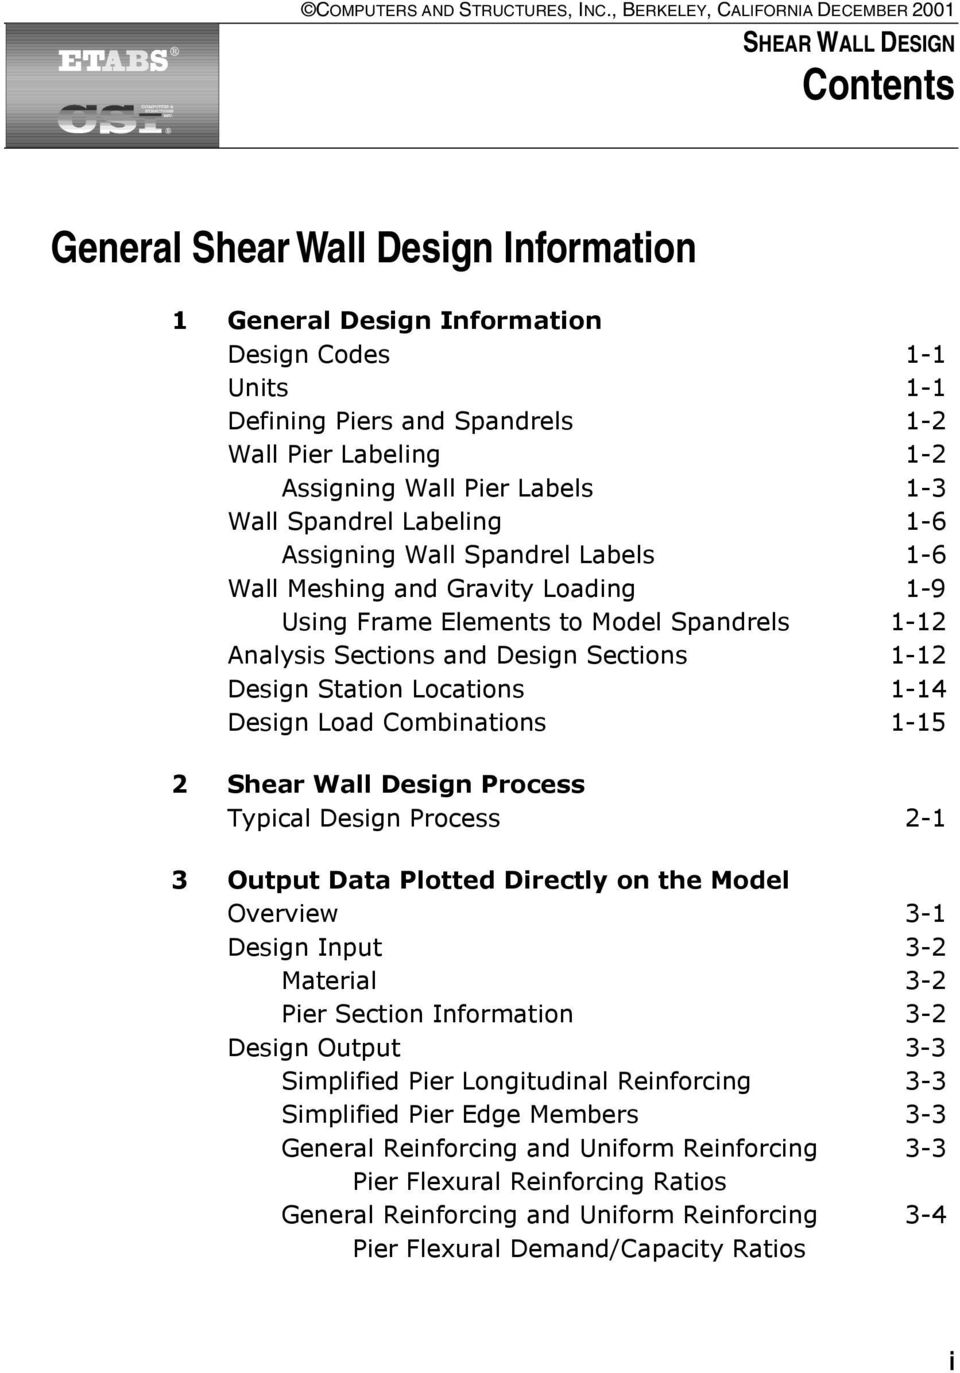 Pier Labeling 1-2 Assigning Wall Pier Labels 1-3 Wall Spandrel Labeling 1-6 Assigning Wall Spandrel Labels 1-6 Wall Meshing and Gravity Loading 1-9 Using Frame Elements to Model Spandrels 1-12